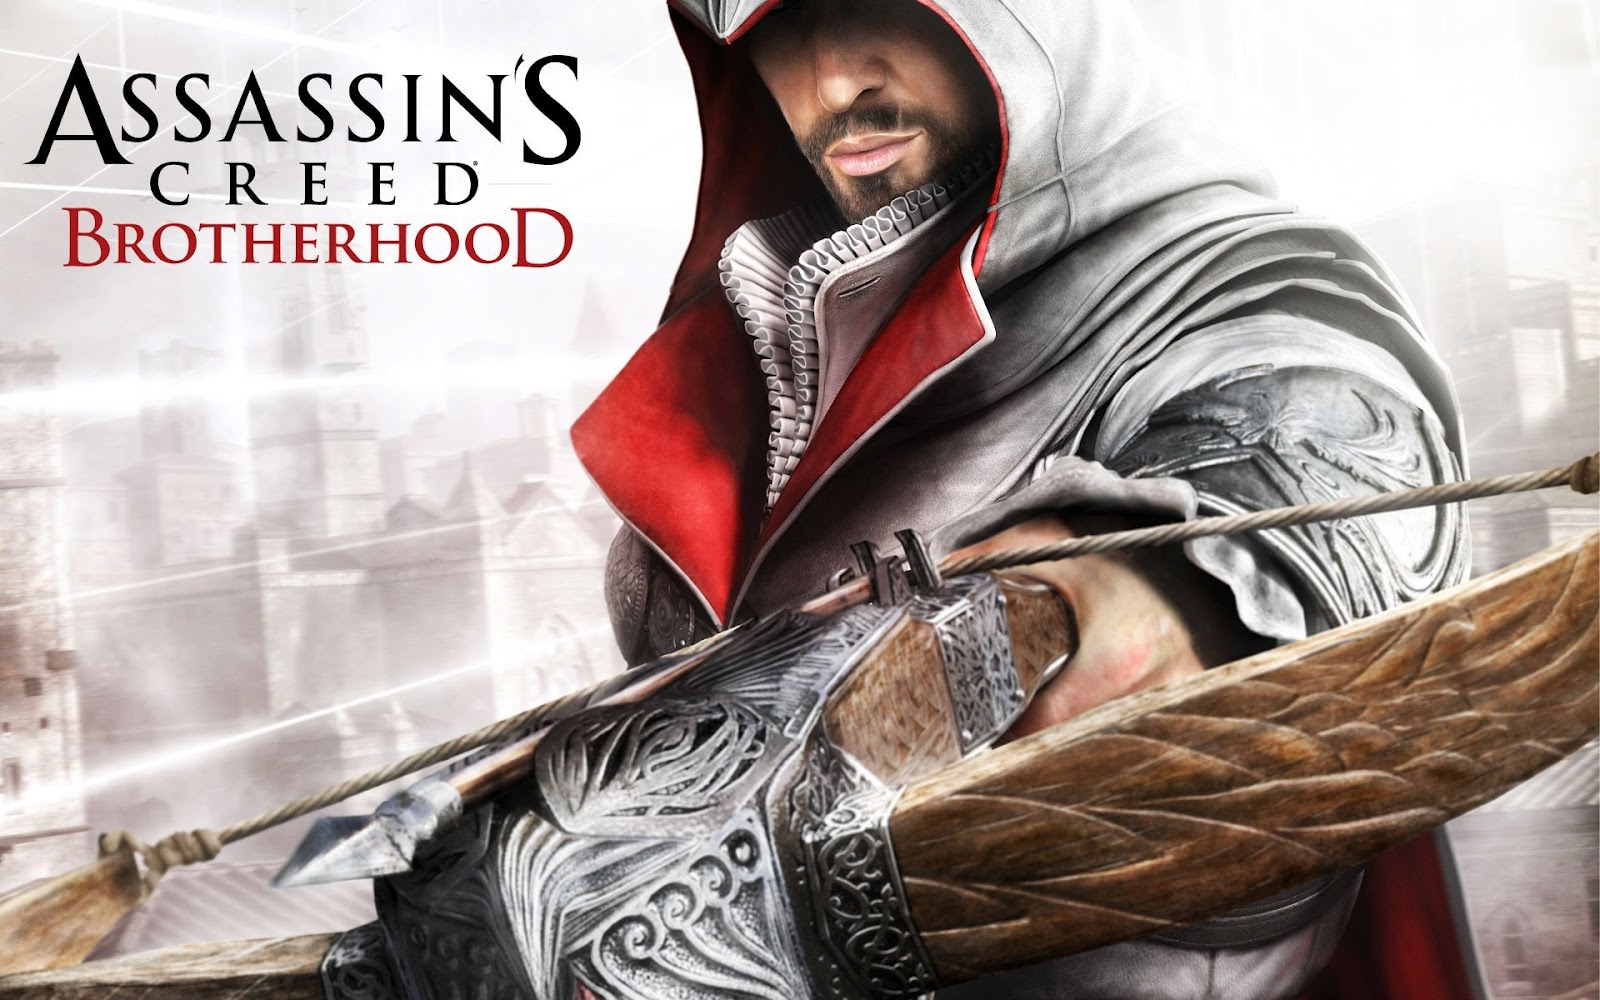 http://2.bp.blogspot.com/-tZtfQuJAmj0/UDQ4QH8OD1I/AAAAAAAAFUQ/nvtMF3-sVbY/s1600/assassins_creed_brotherhood_game-1920x1200.jpg